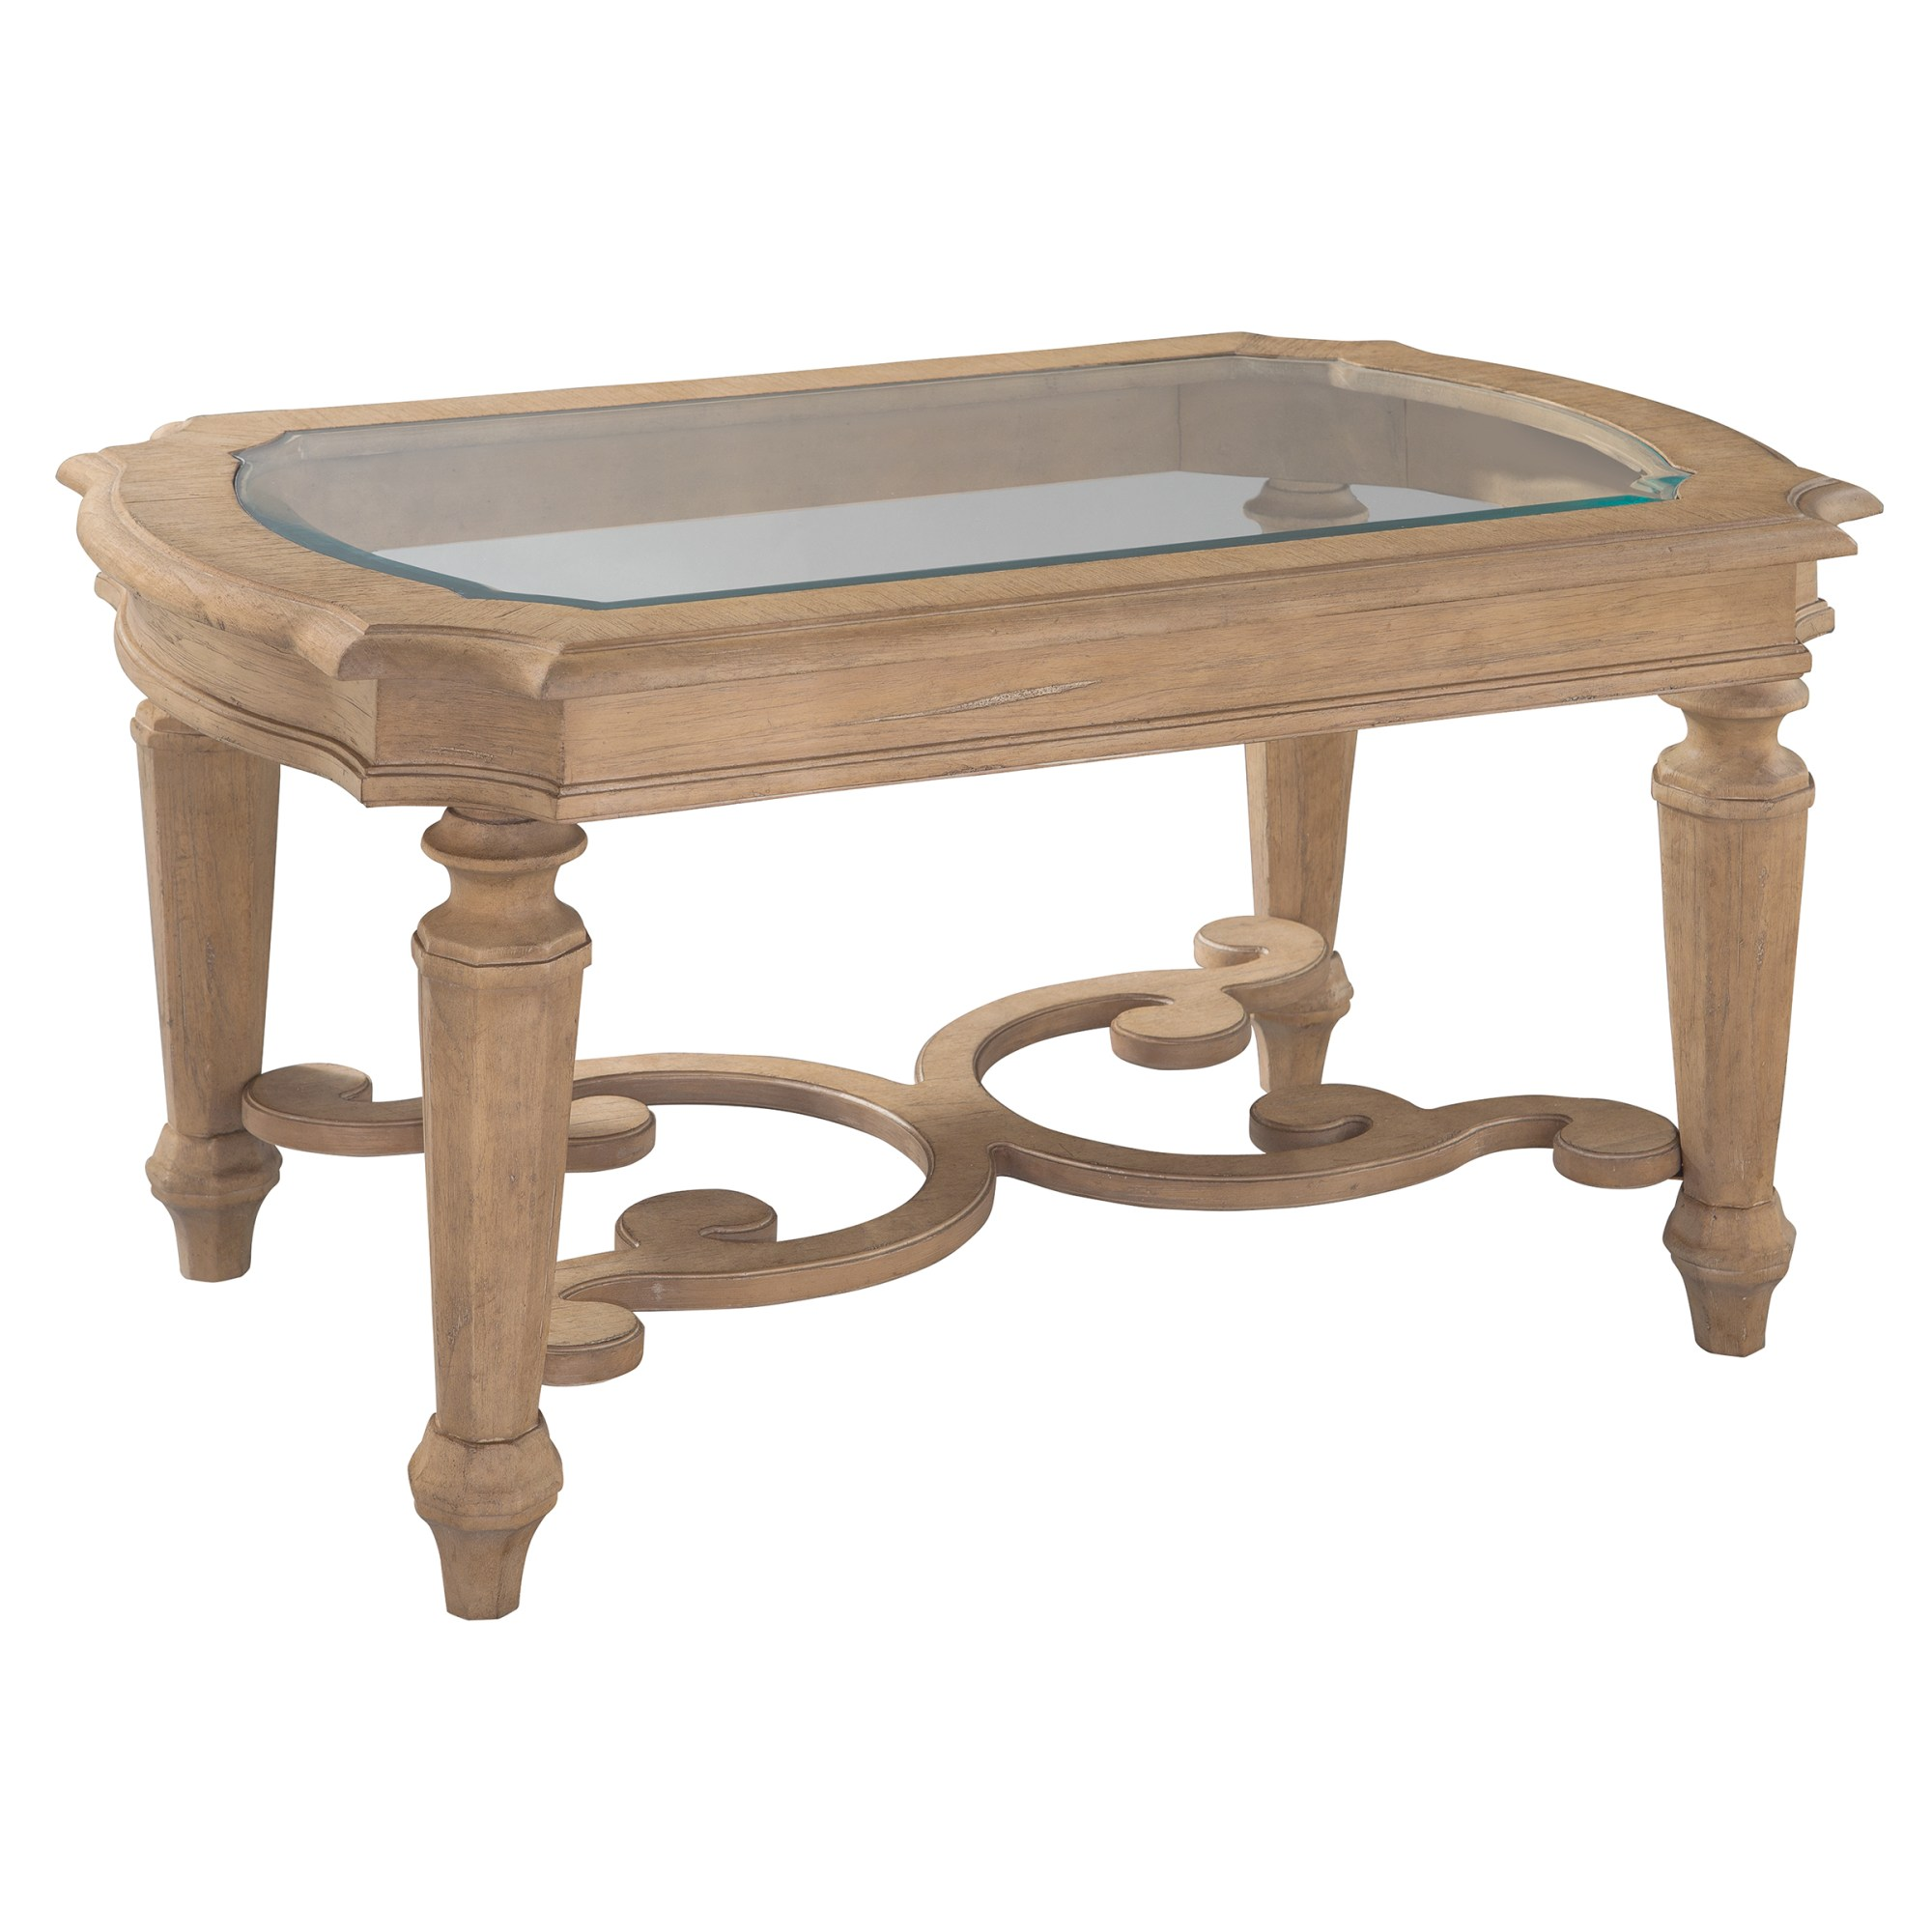 Image for 2-3601 Grand Vista Rectangular Glass Top Coffee Table from Hekman Official Website